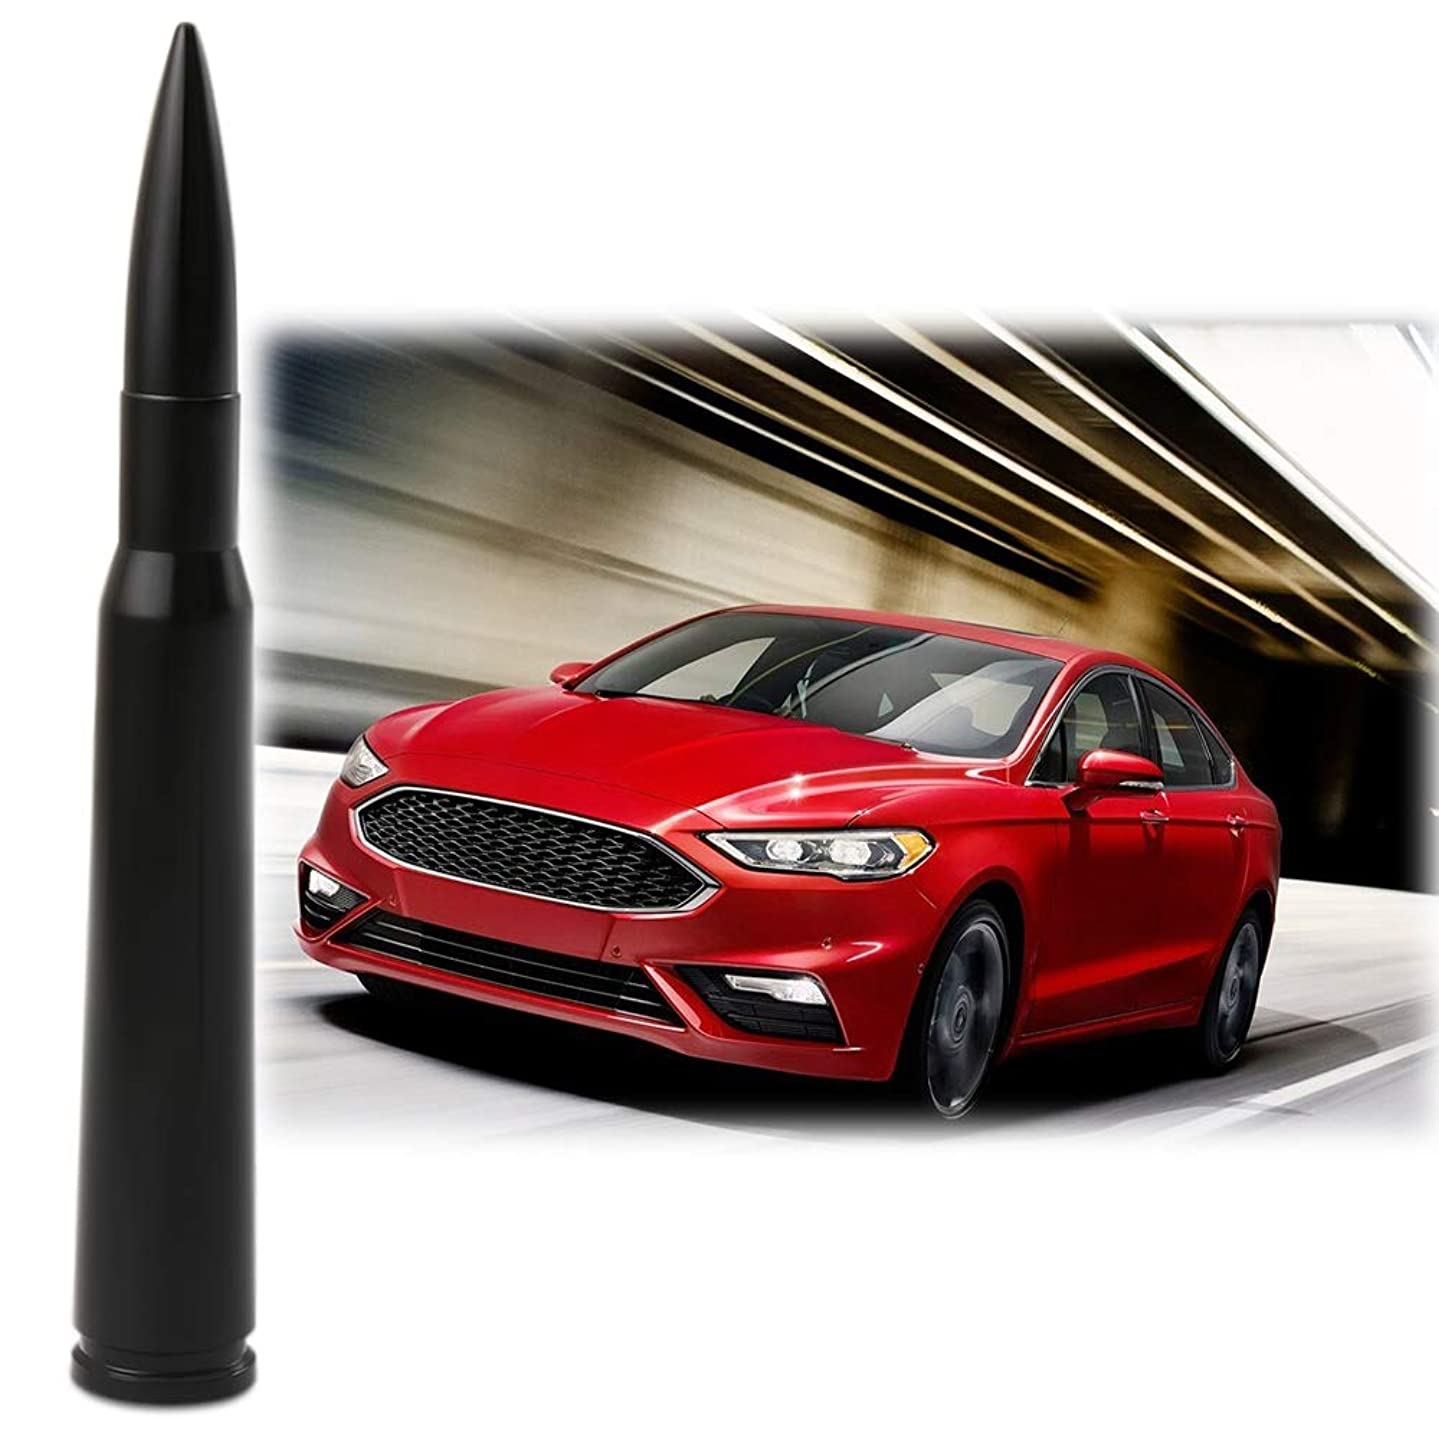 Bullet Antenna Fit Ford Explorer Edge Fusion Focus Escape Fiesta Expedition 2008-2019 Accessories Short Replacement Antenna